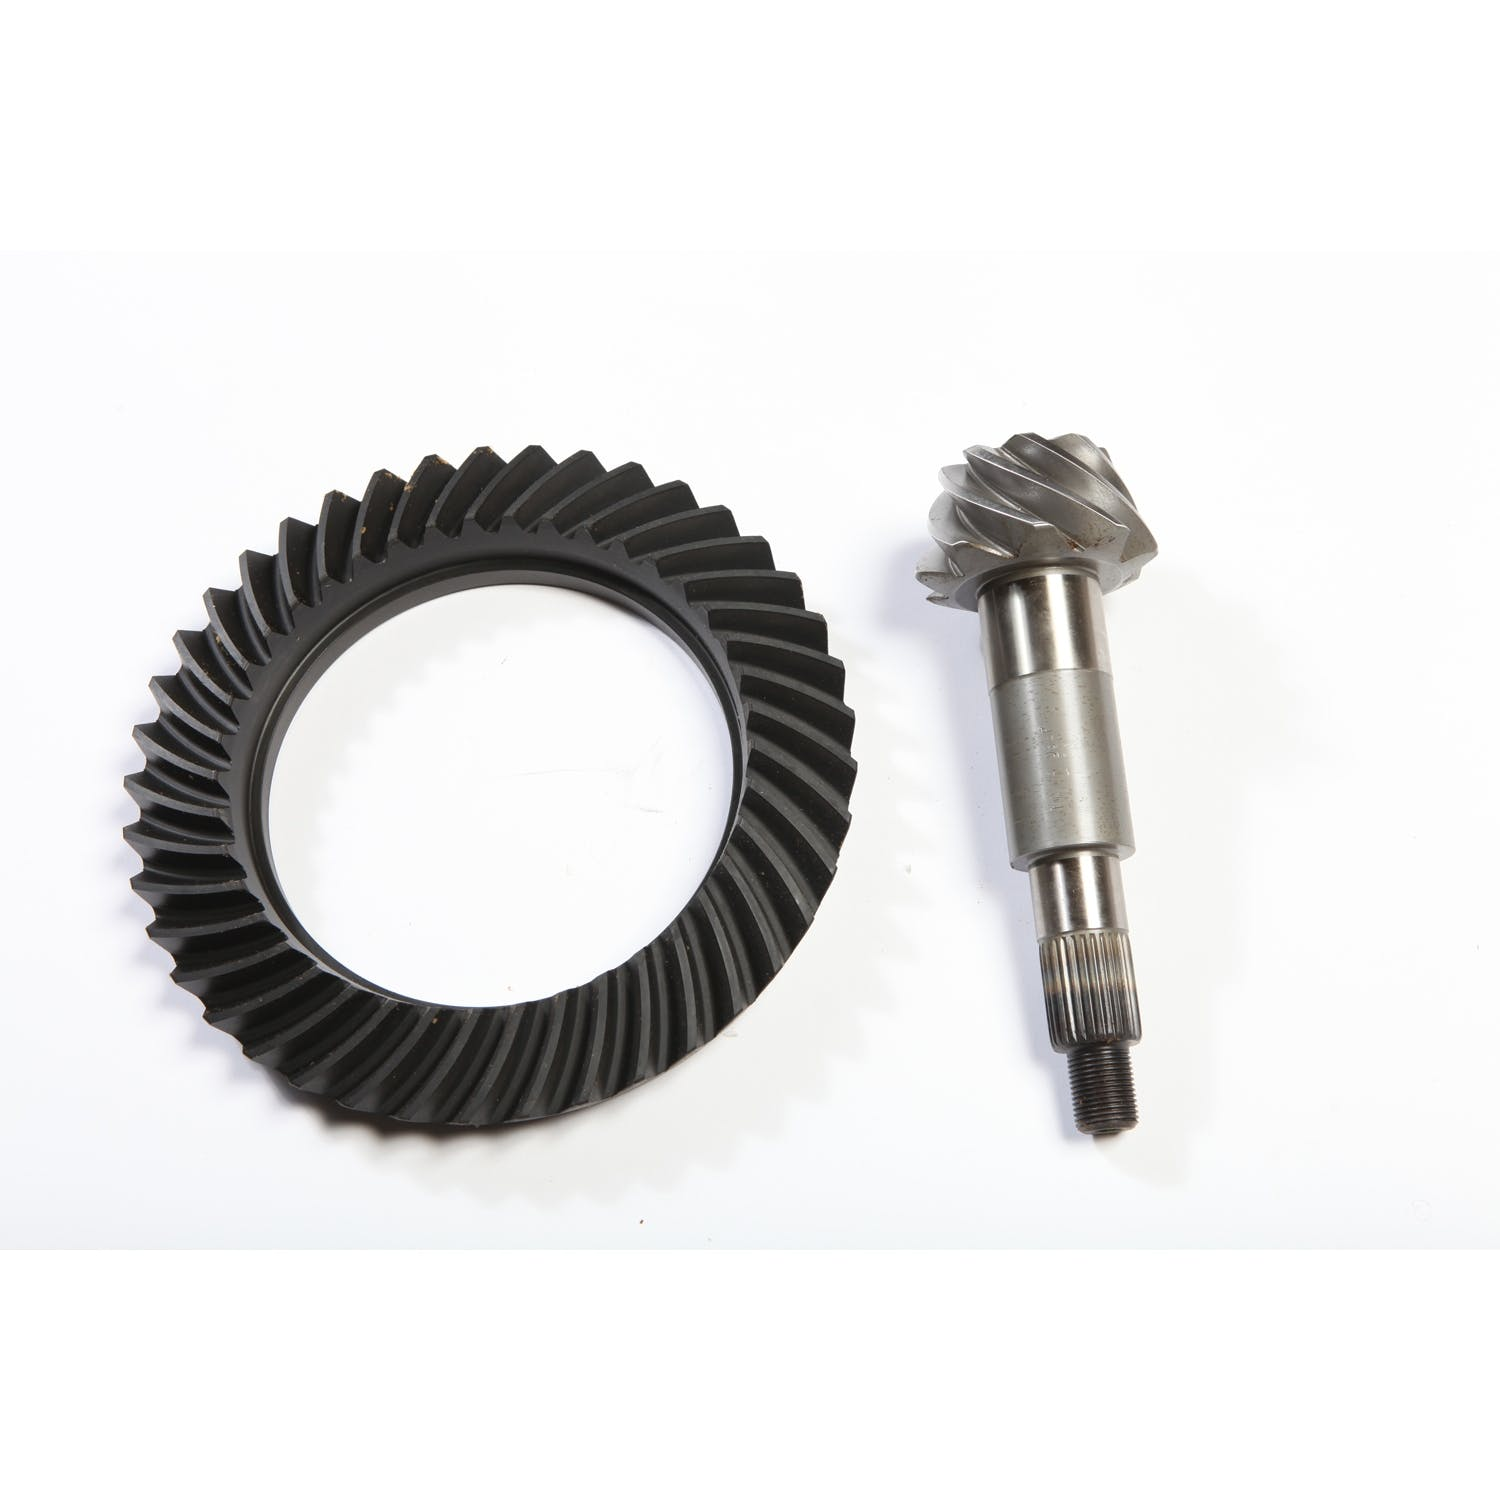 Alloy USA D44456R 4.56 Ratio Ring and Pinion Gear Set for Dana 44 Front Axle D44456RJK